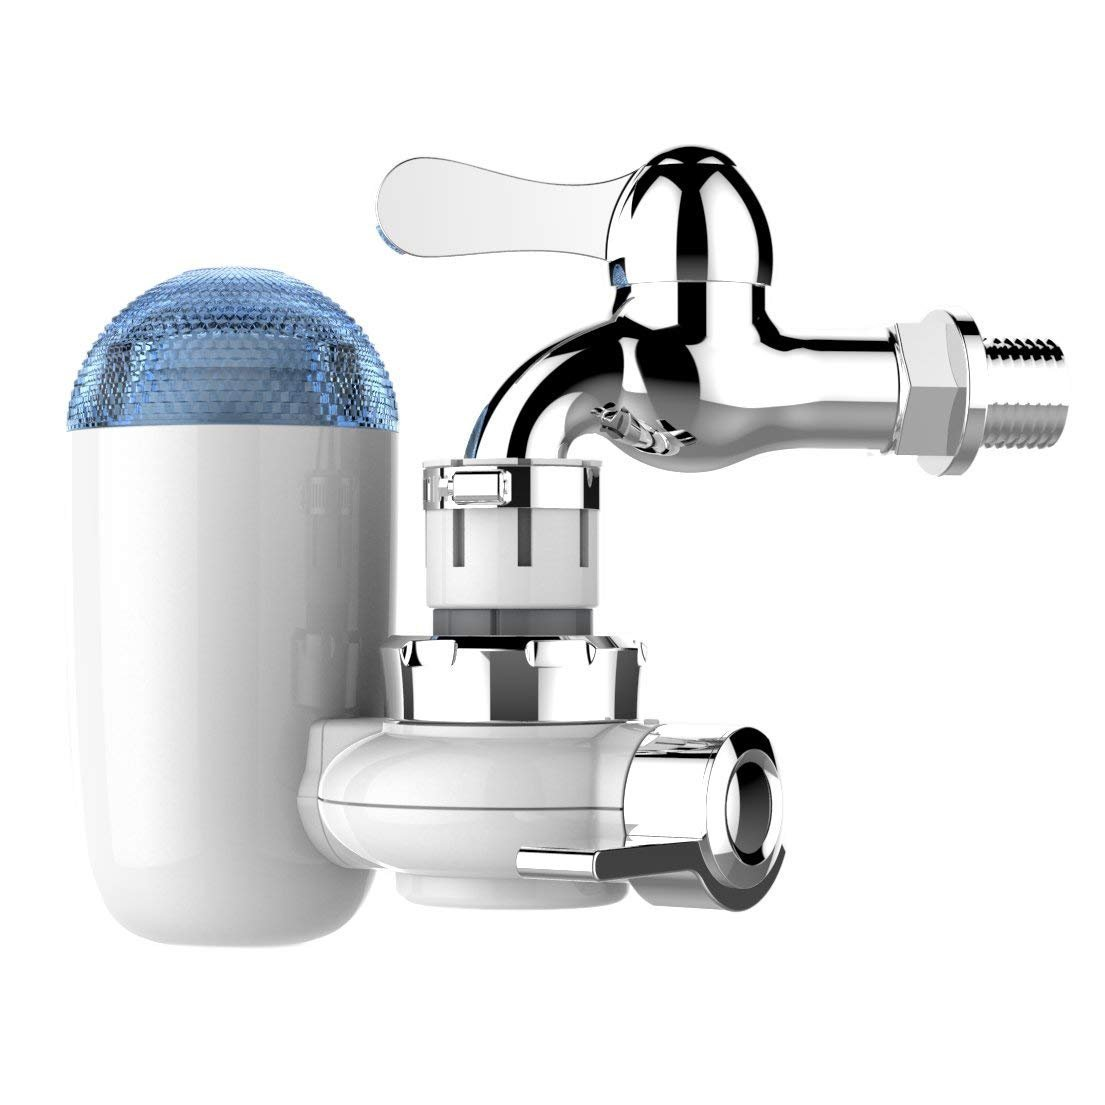 IREALIST Faucet Water Filter, Water Filtration Faucet Mount Faucet Water Filter System, Faucet Mount Drinking Tap Water Filter (White) by IREALIST (Image #1)